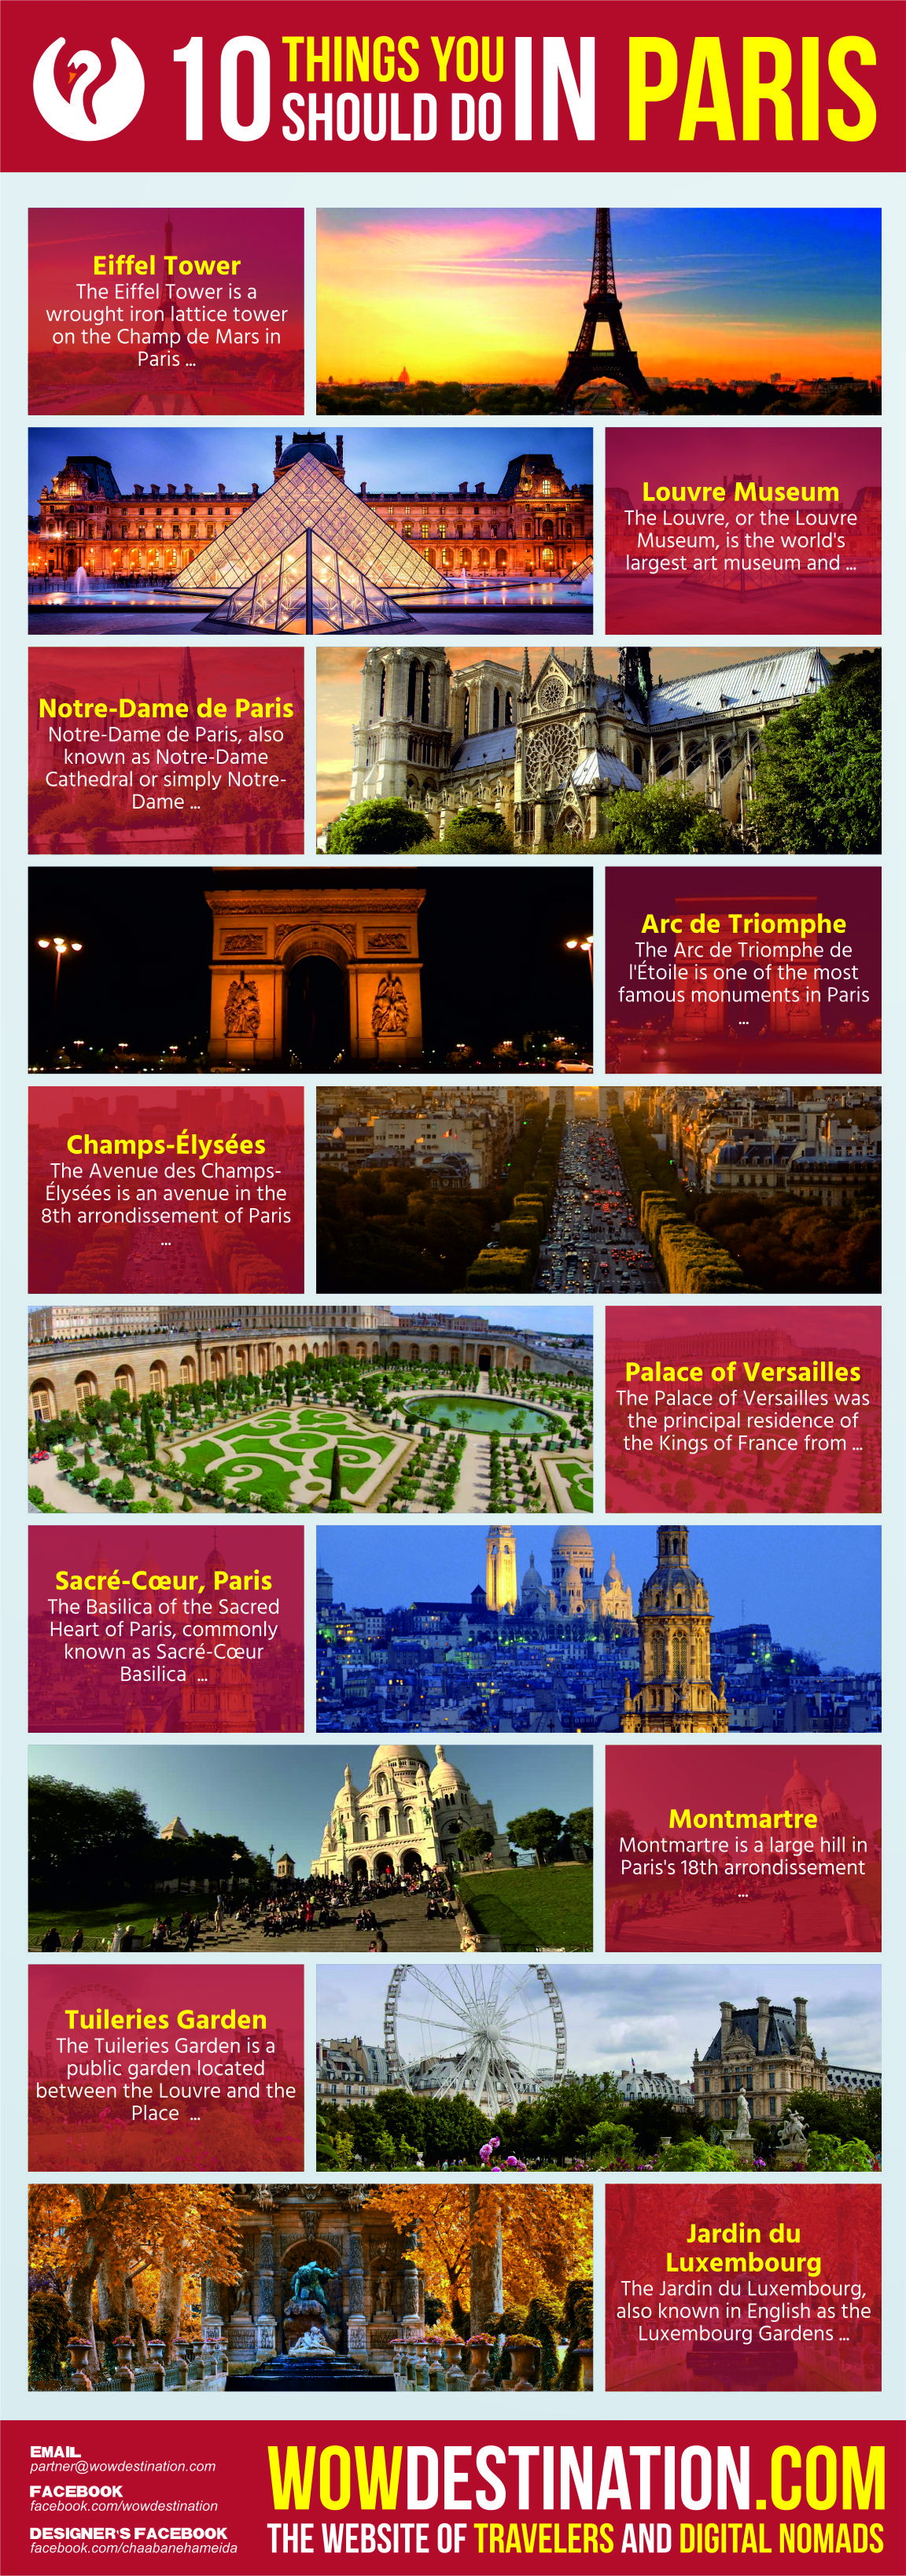 https://wowdestination.com/images/infographics/thingsToDoParisRed.jpg